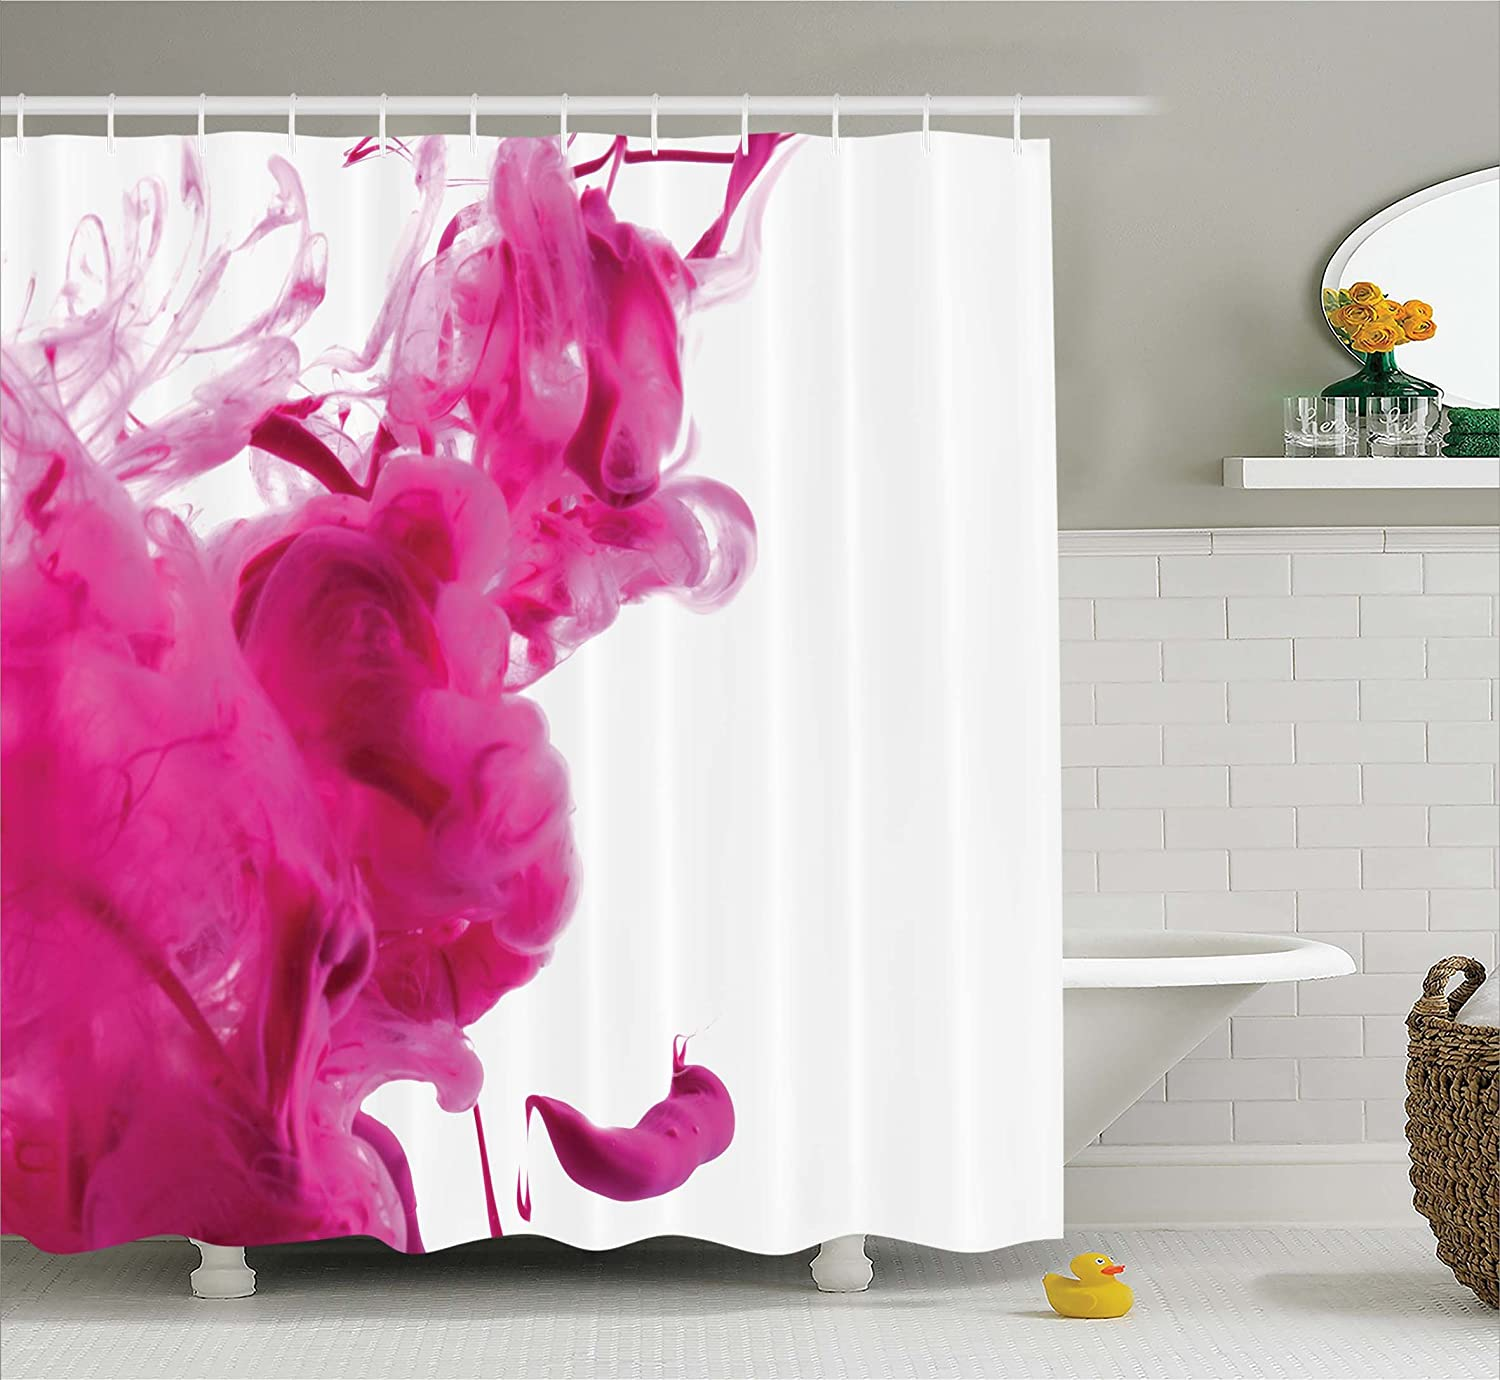 Ambesonne Magenta Decor Shower Curtain By Color Splash Pastel Colored Hazy Flame Like Watercolor Show Style Fabric Bathroom Set With Hooks